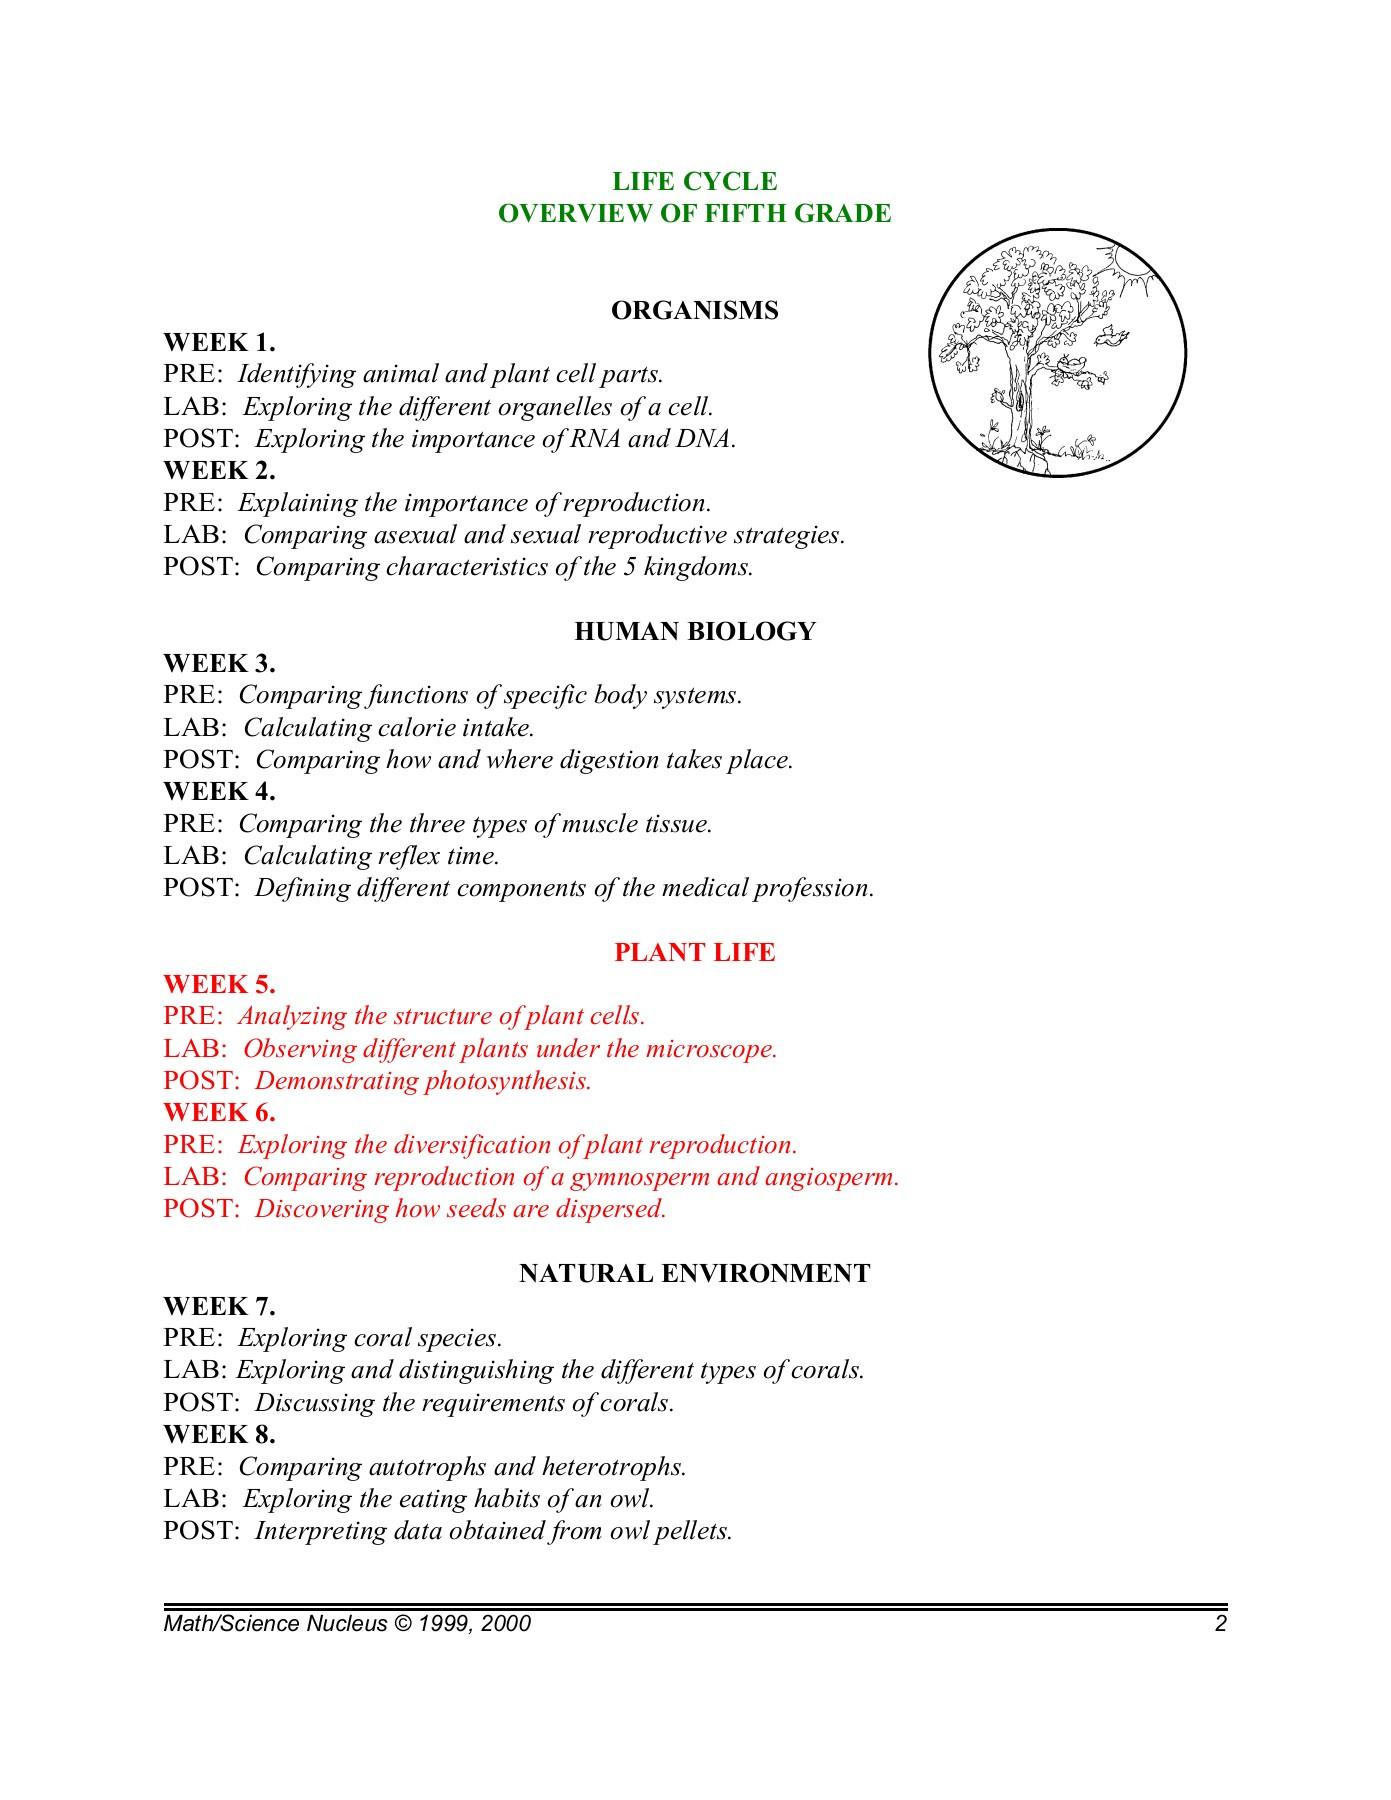 Plant Reproduction Worksheet Answers Fifth Grade Plant Life Pages 1 19 Text Version